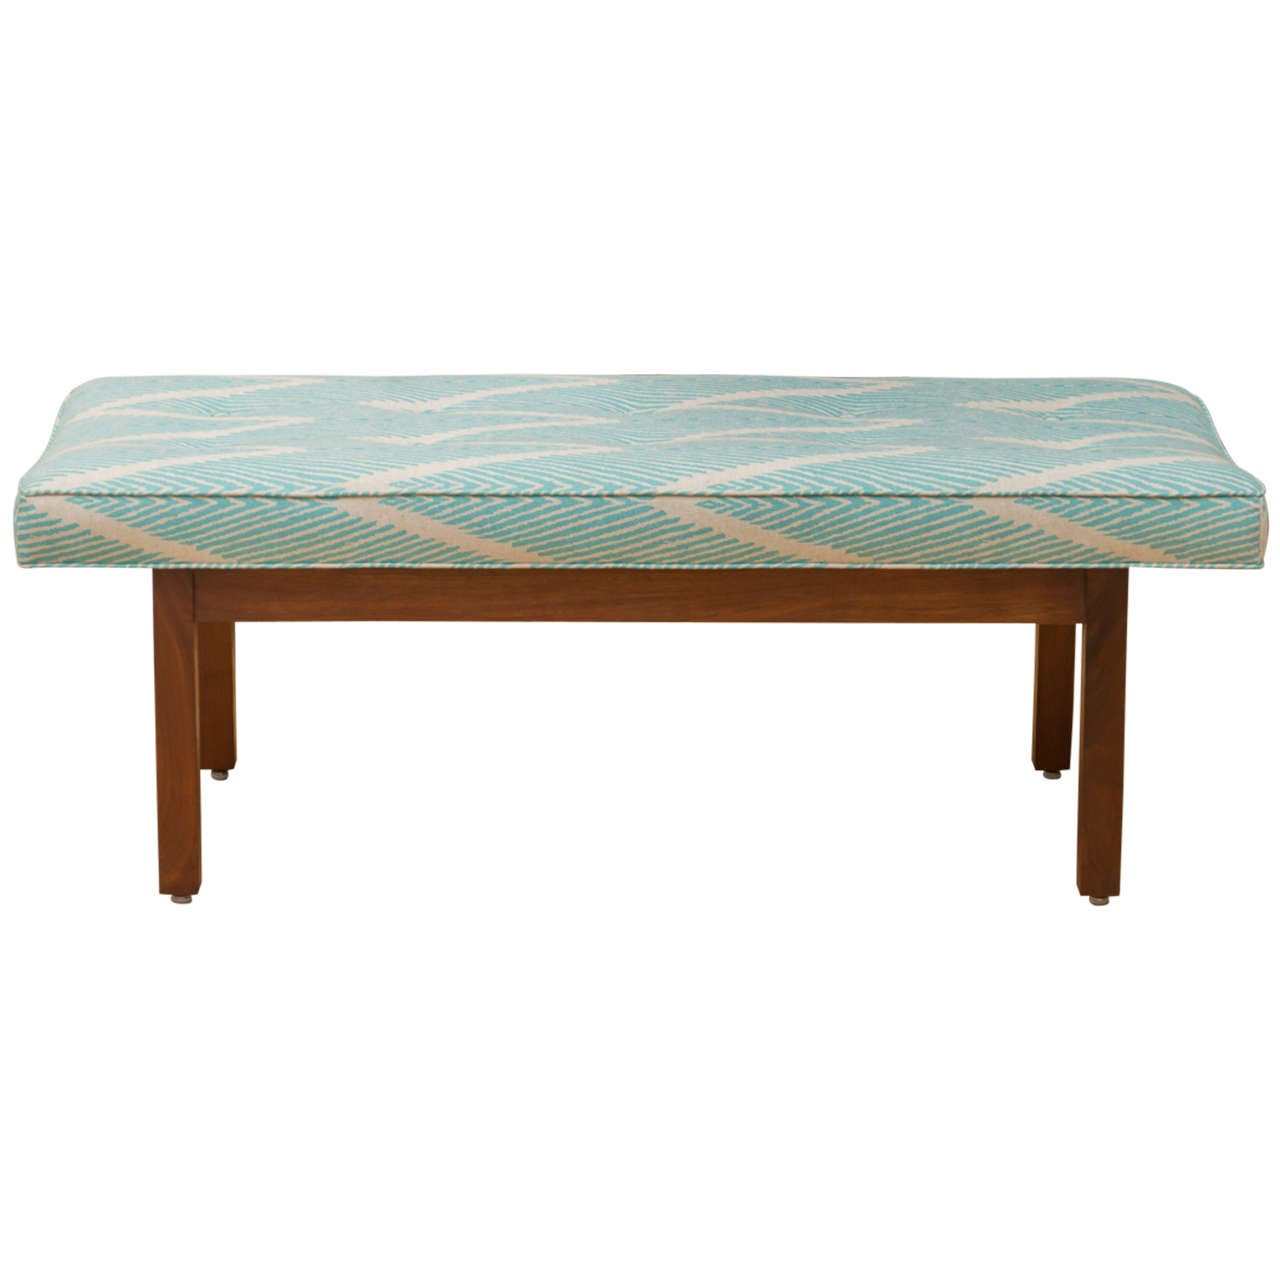 Simple Walnut Bench For Sale At 1stdibs